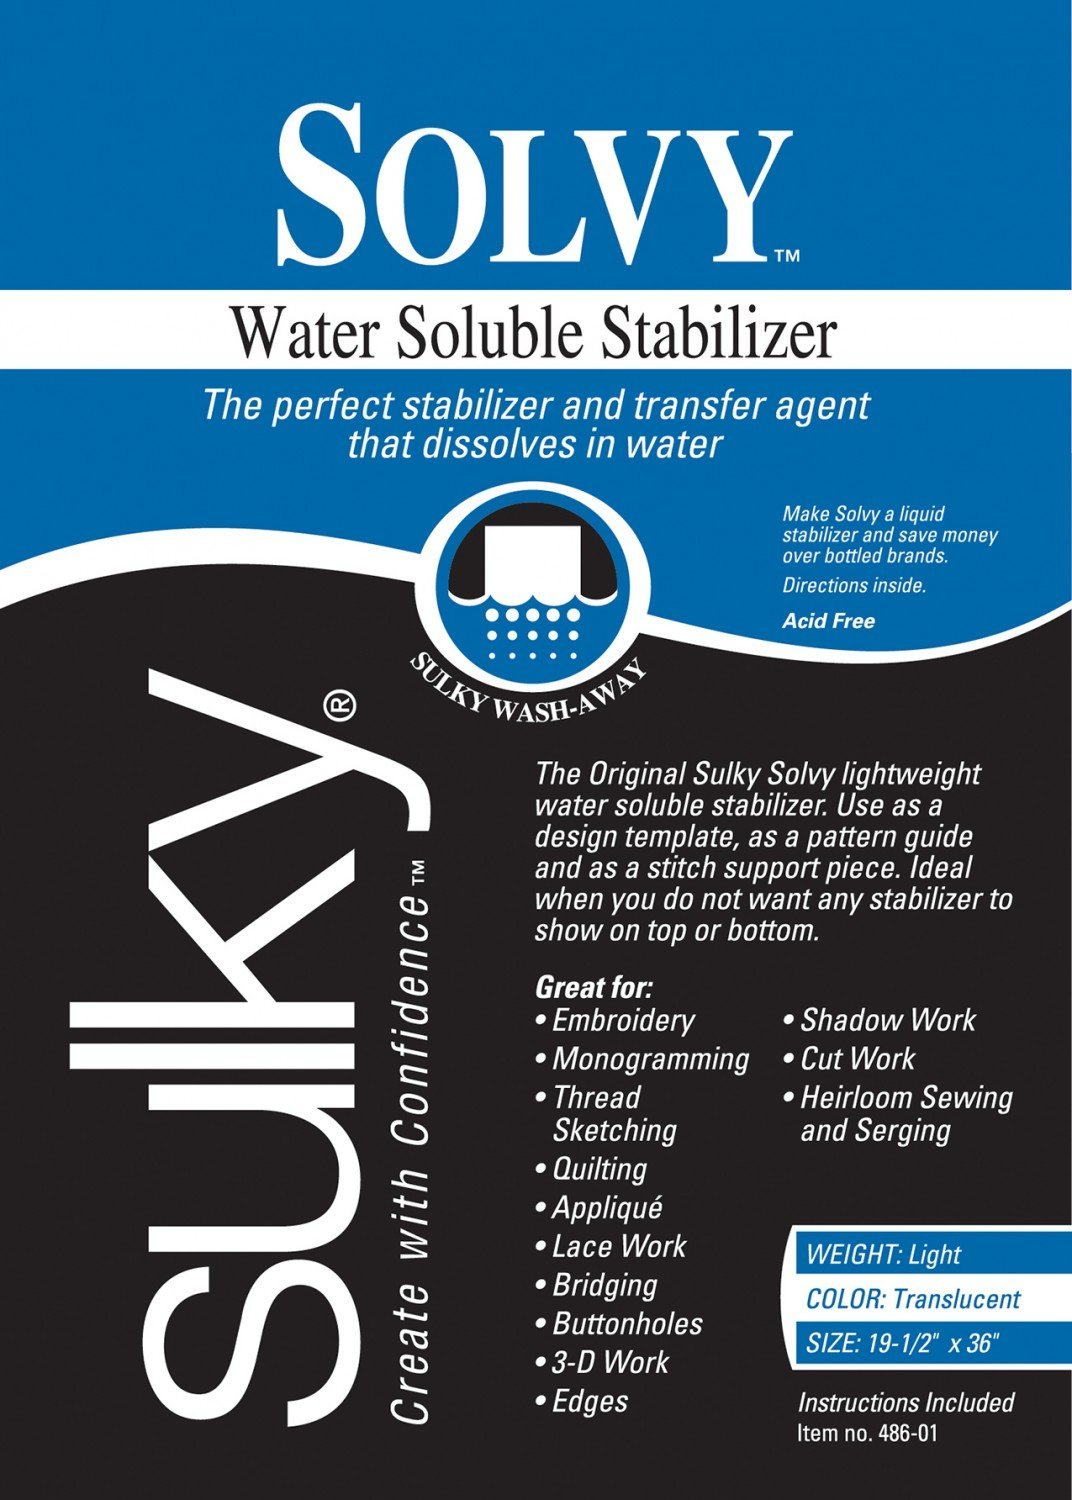 Solvy Water Soluble Stabilizer